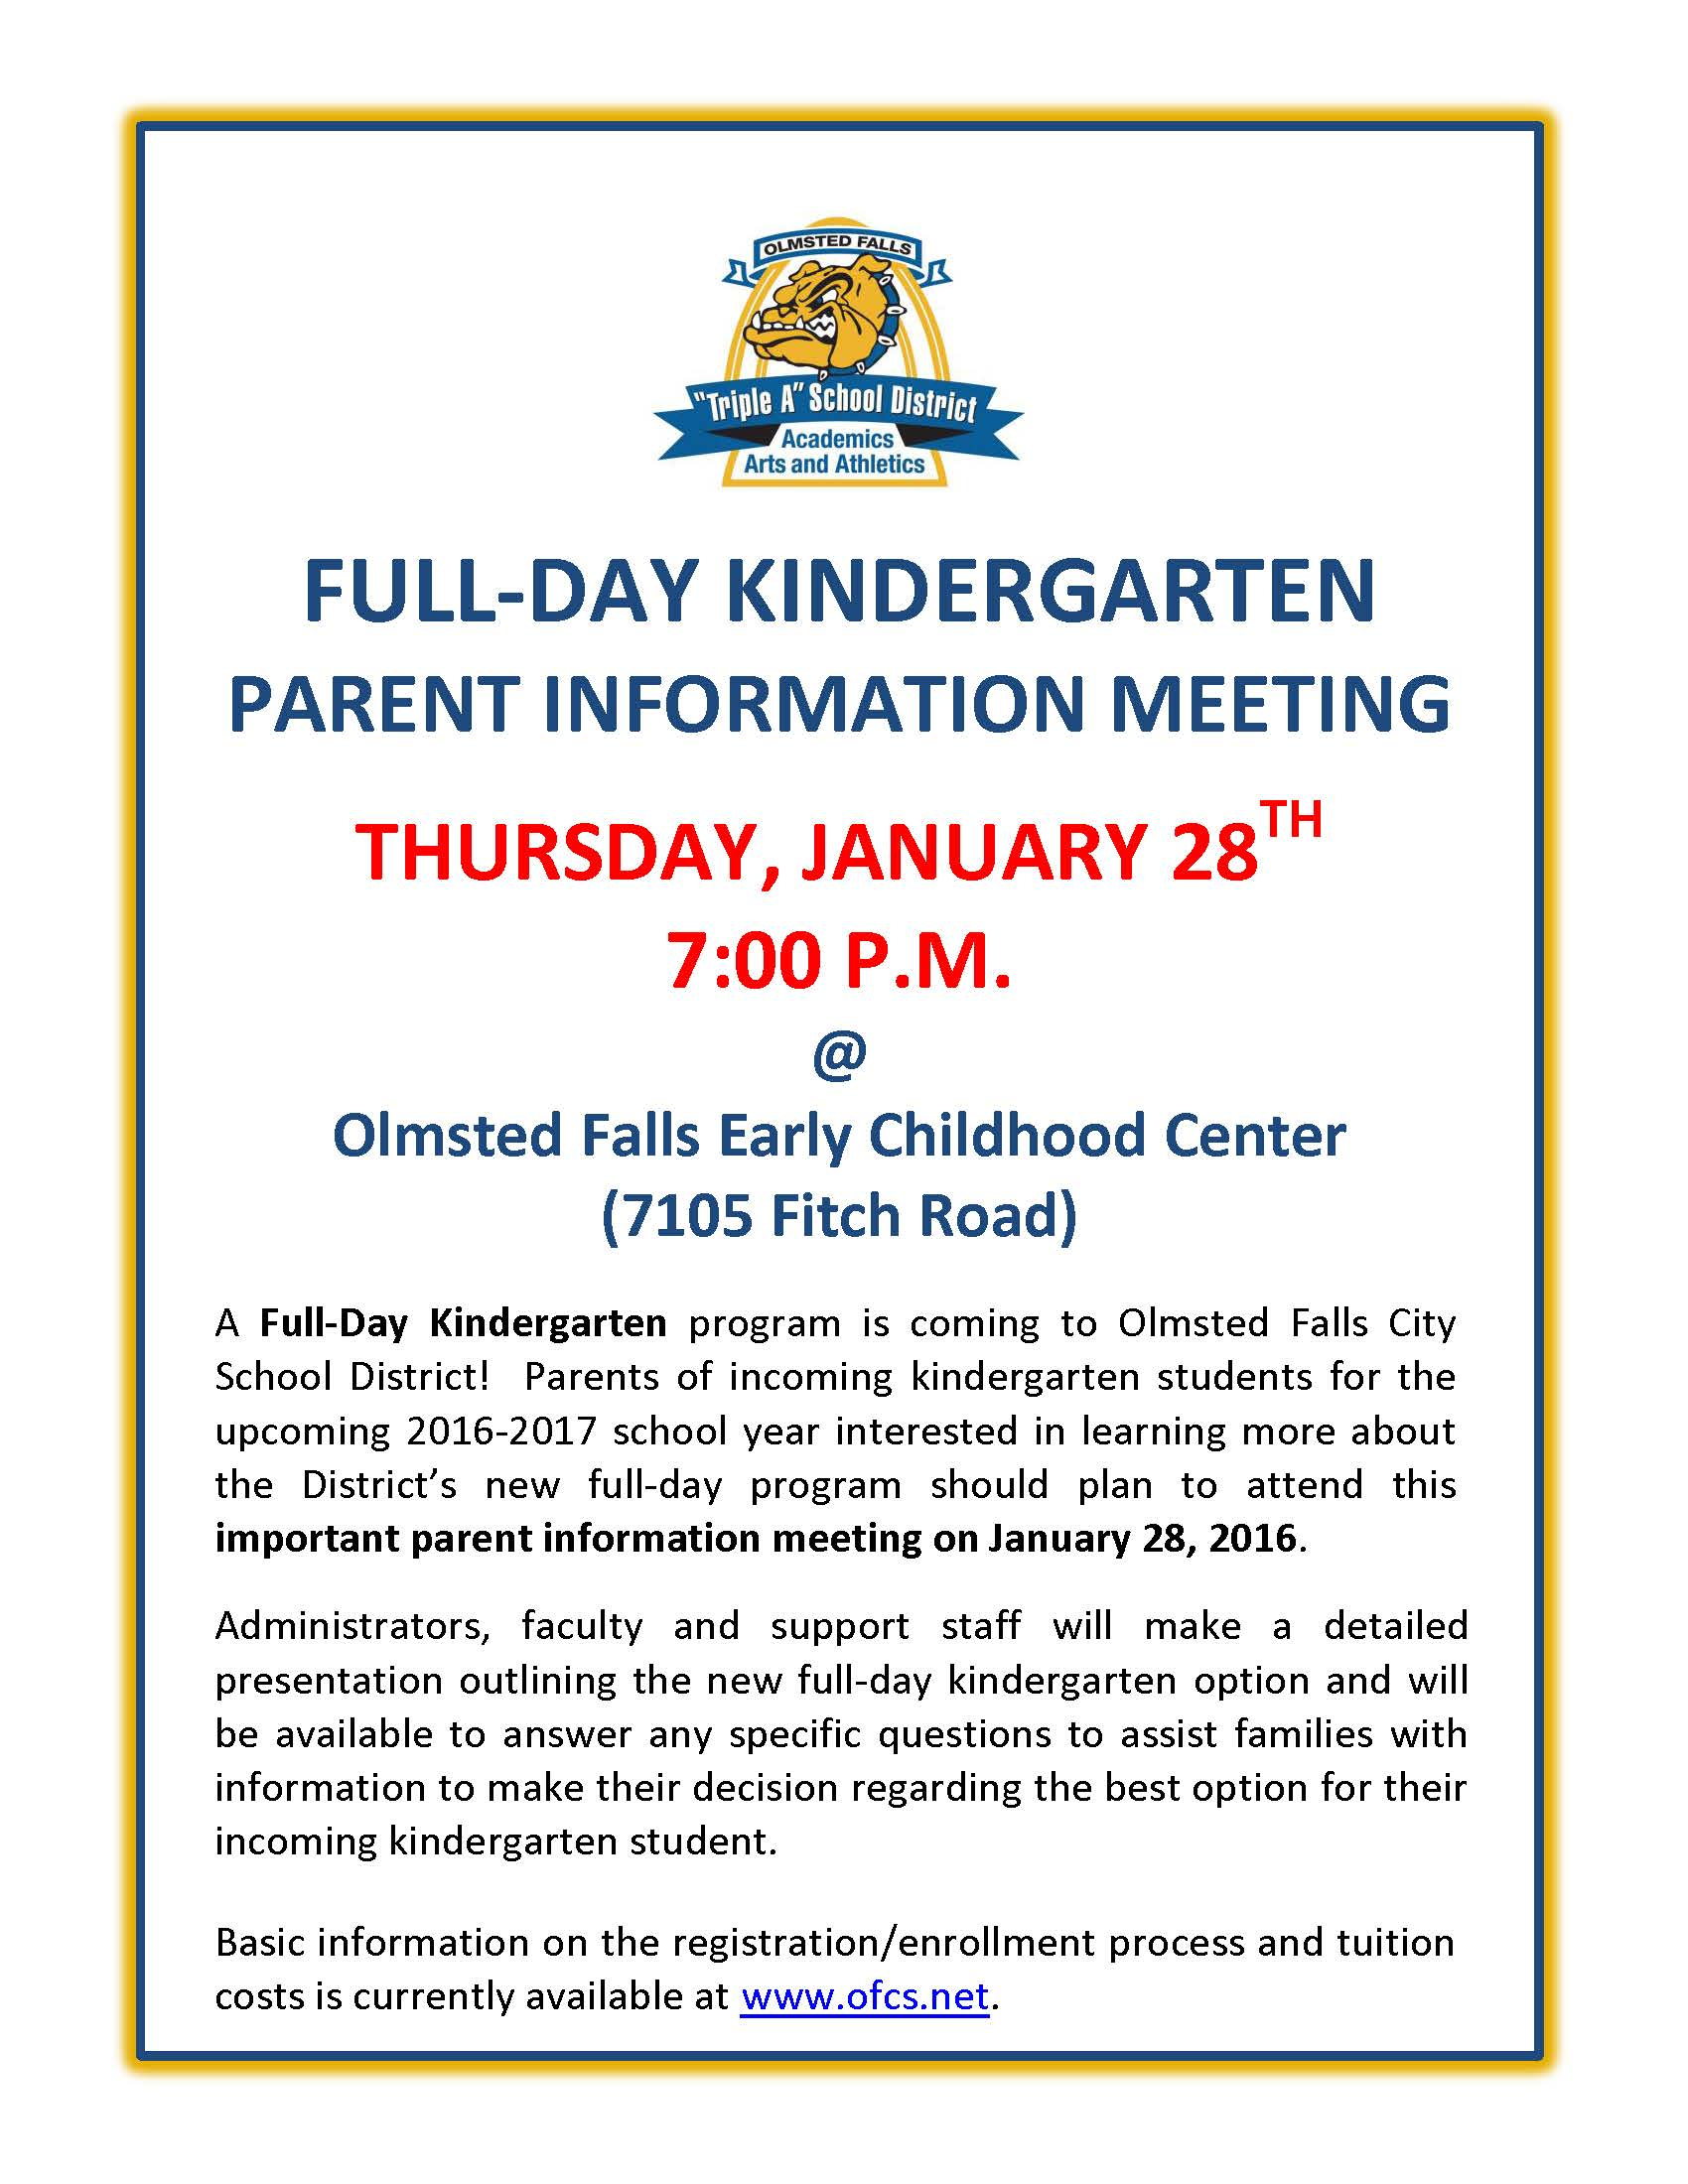 Ofcs update january 26 2016 olmsted falls schools for Parent flyer templates